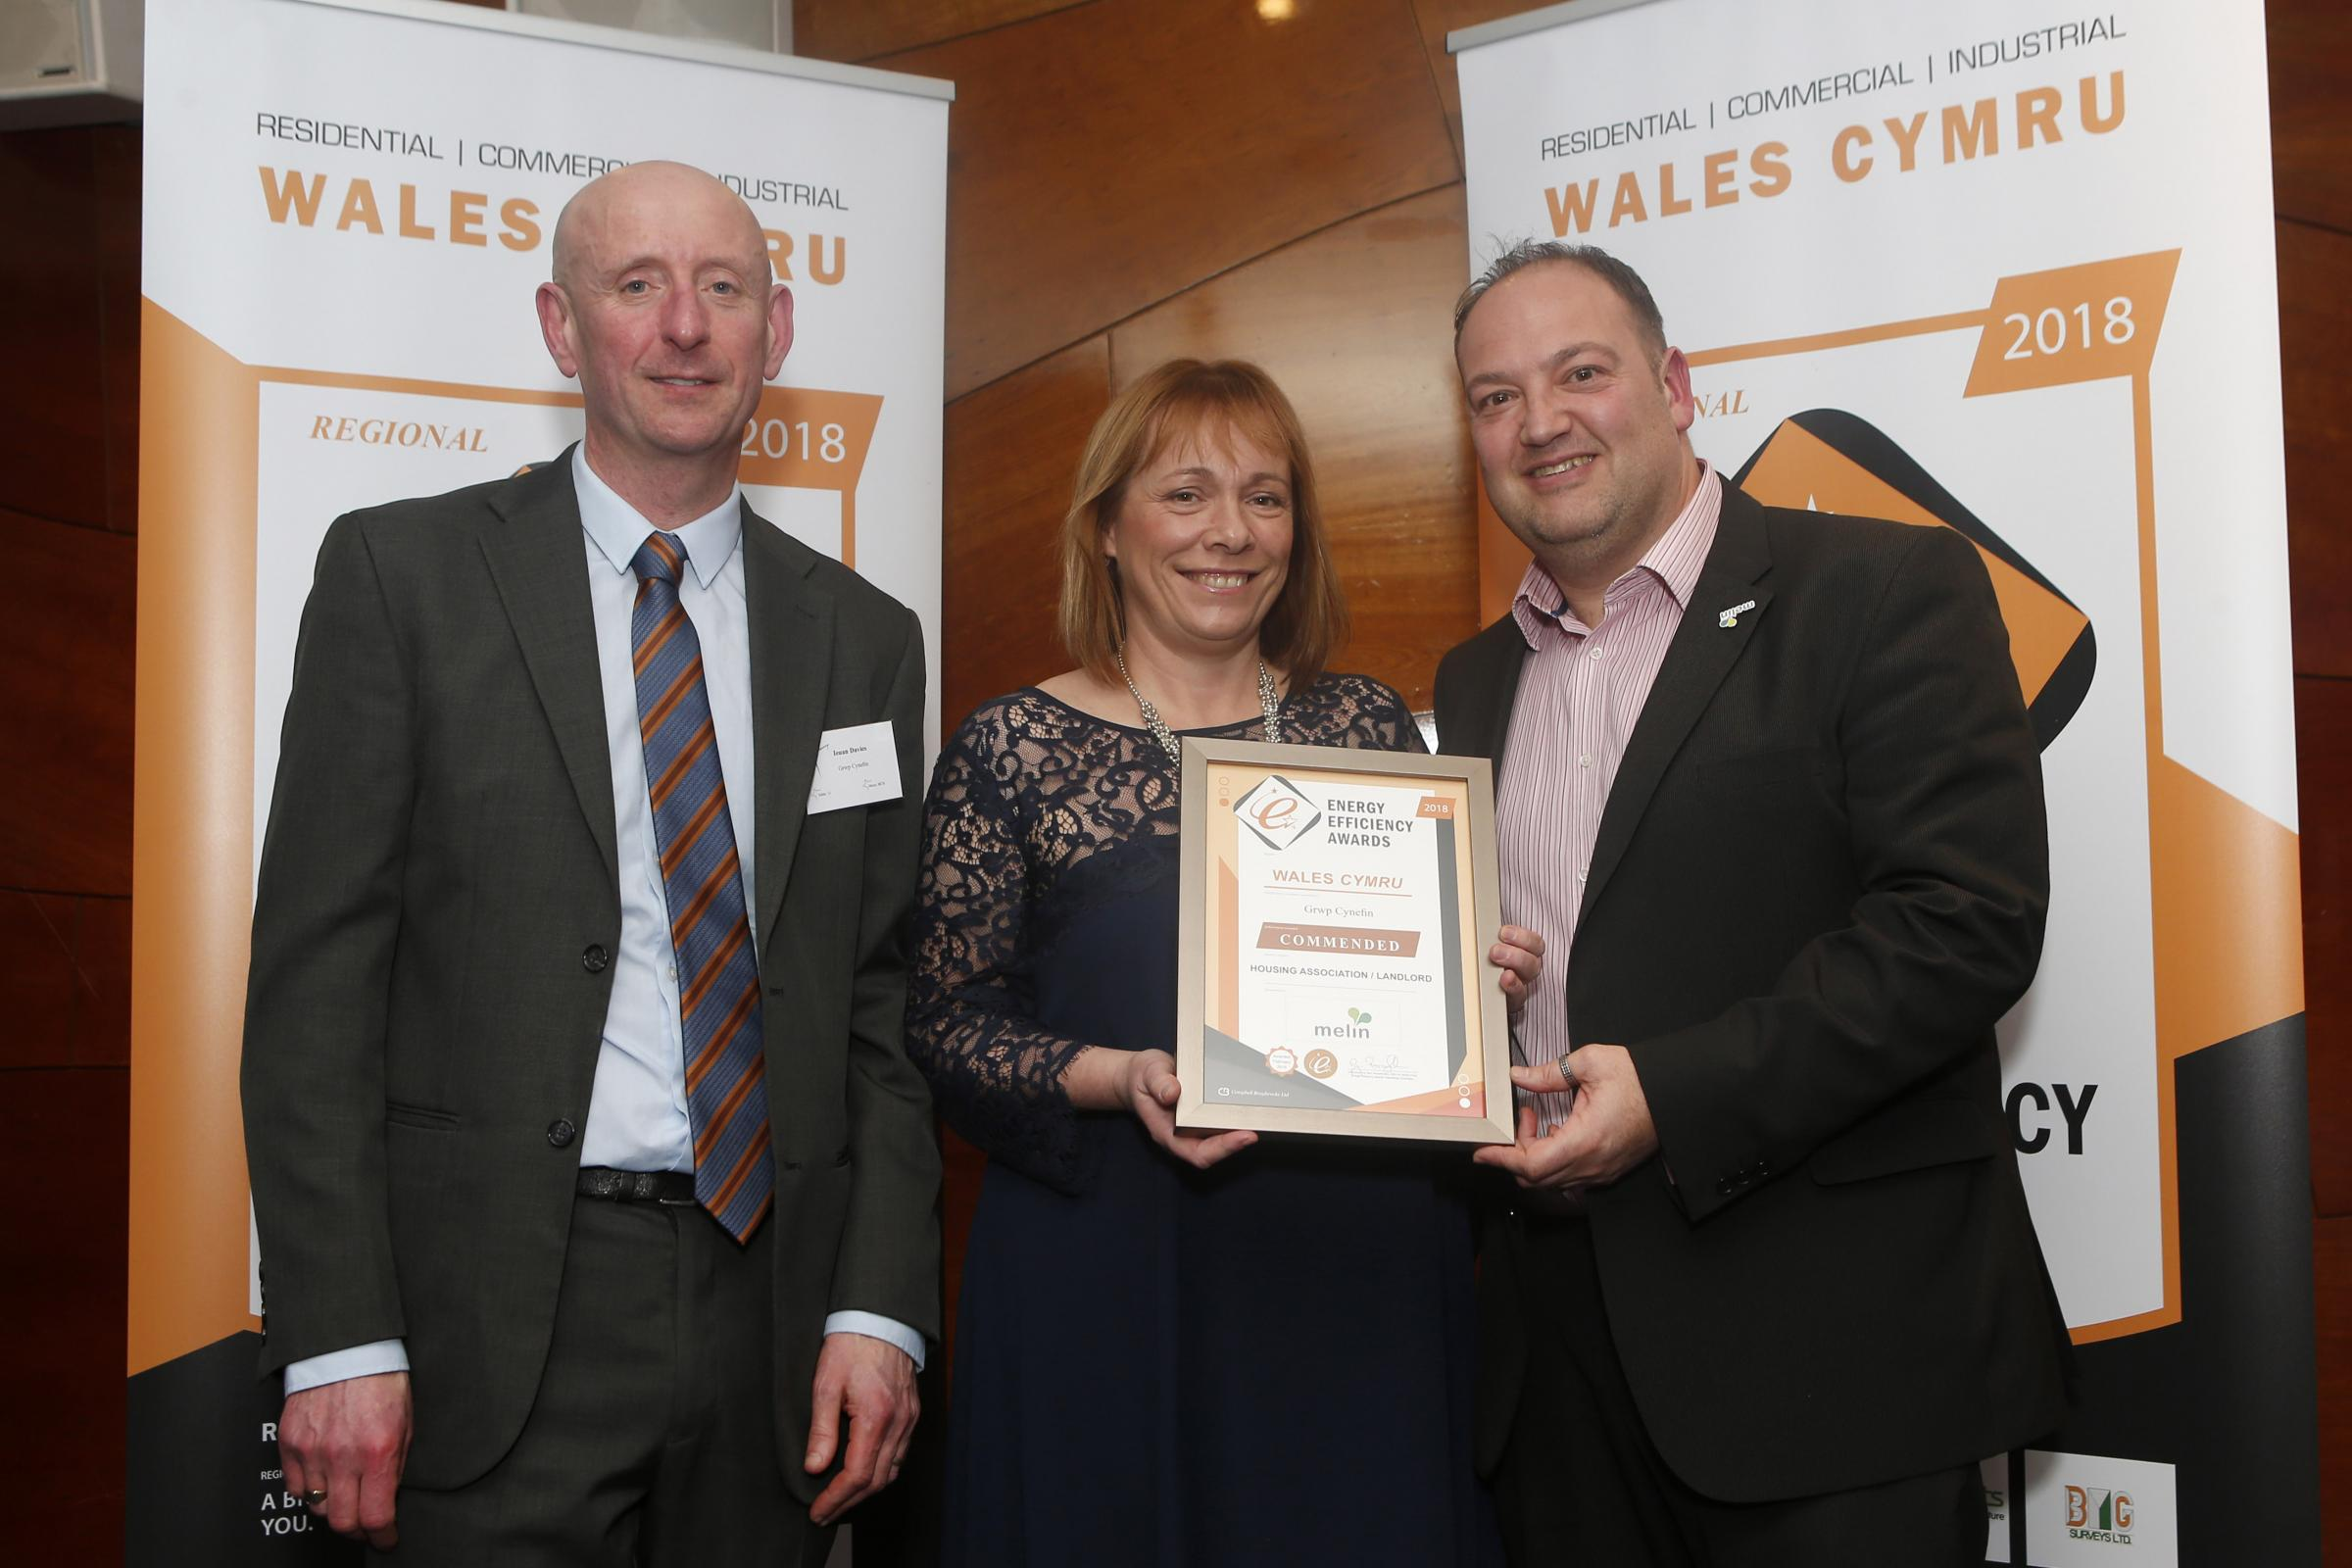 Energy award: From left: Ieuan Davies and Carina Roberts are presented a certificate of high commendation in the housing association category.